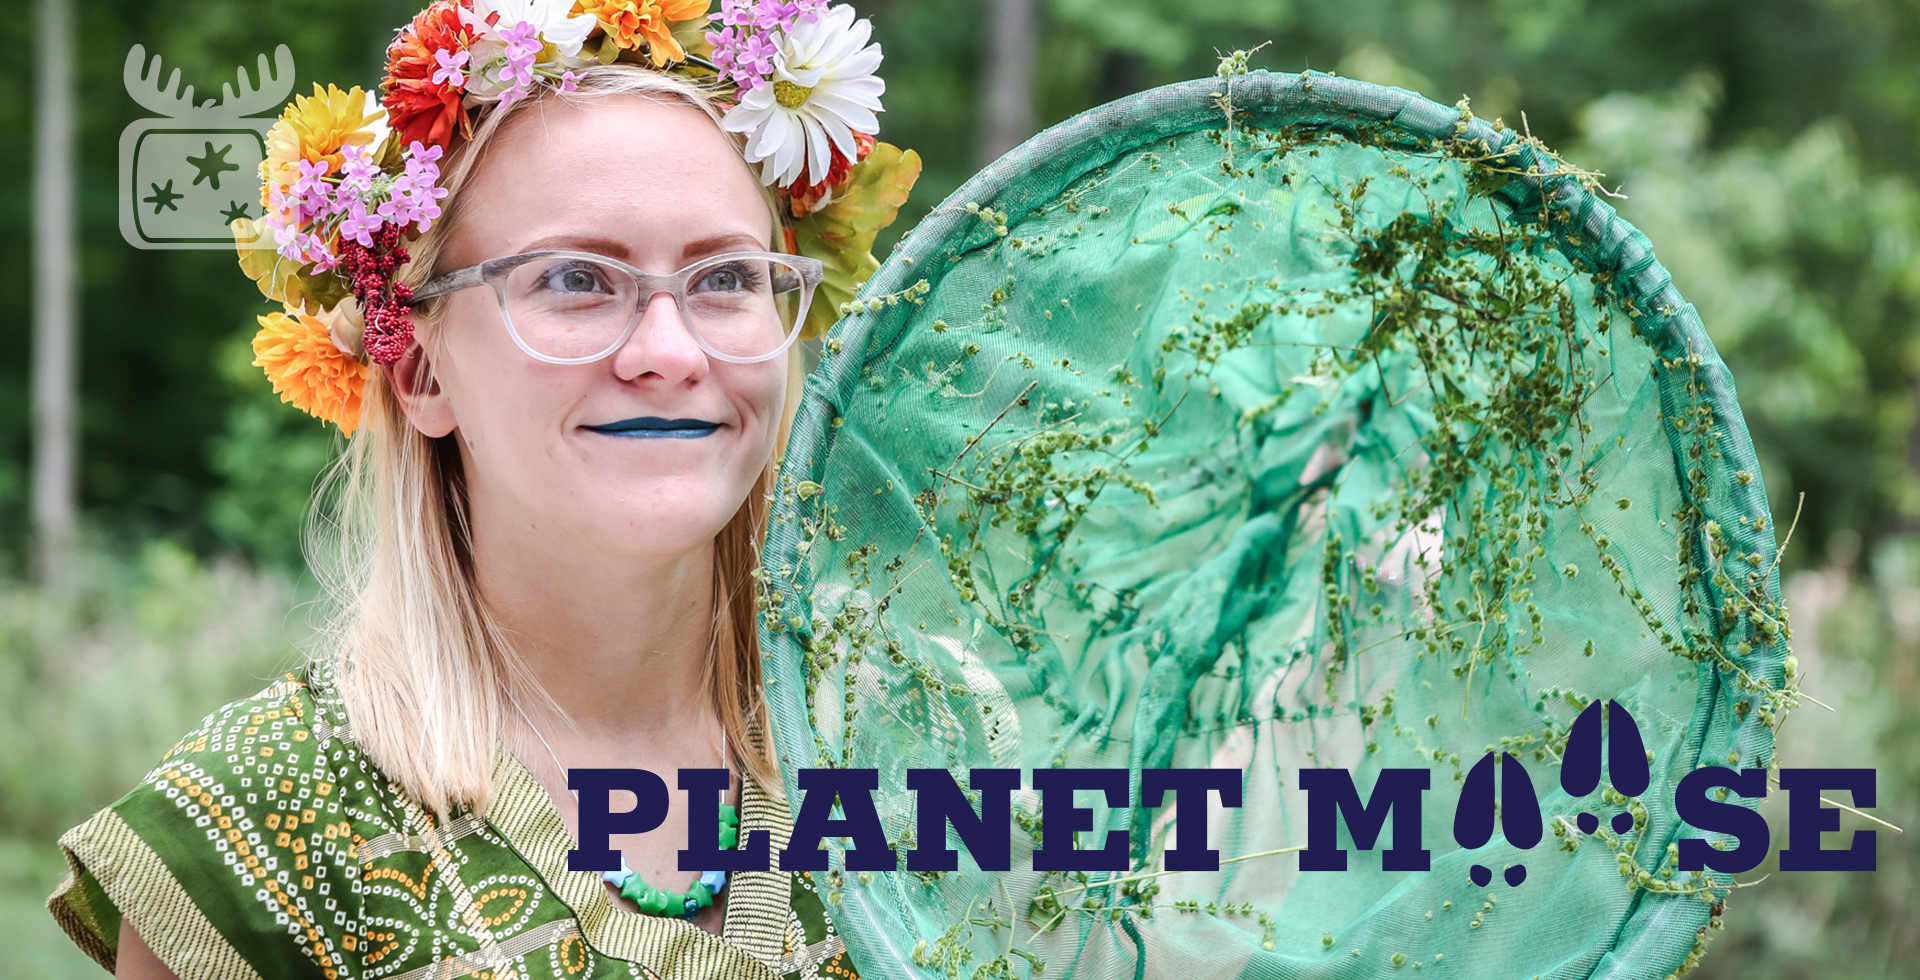 Planet Moose | Mother Nature Leaves